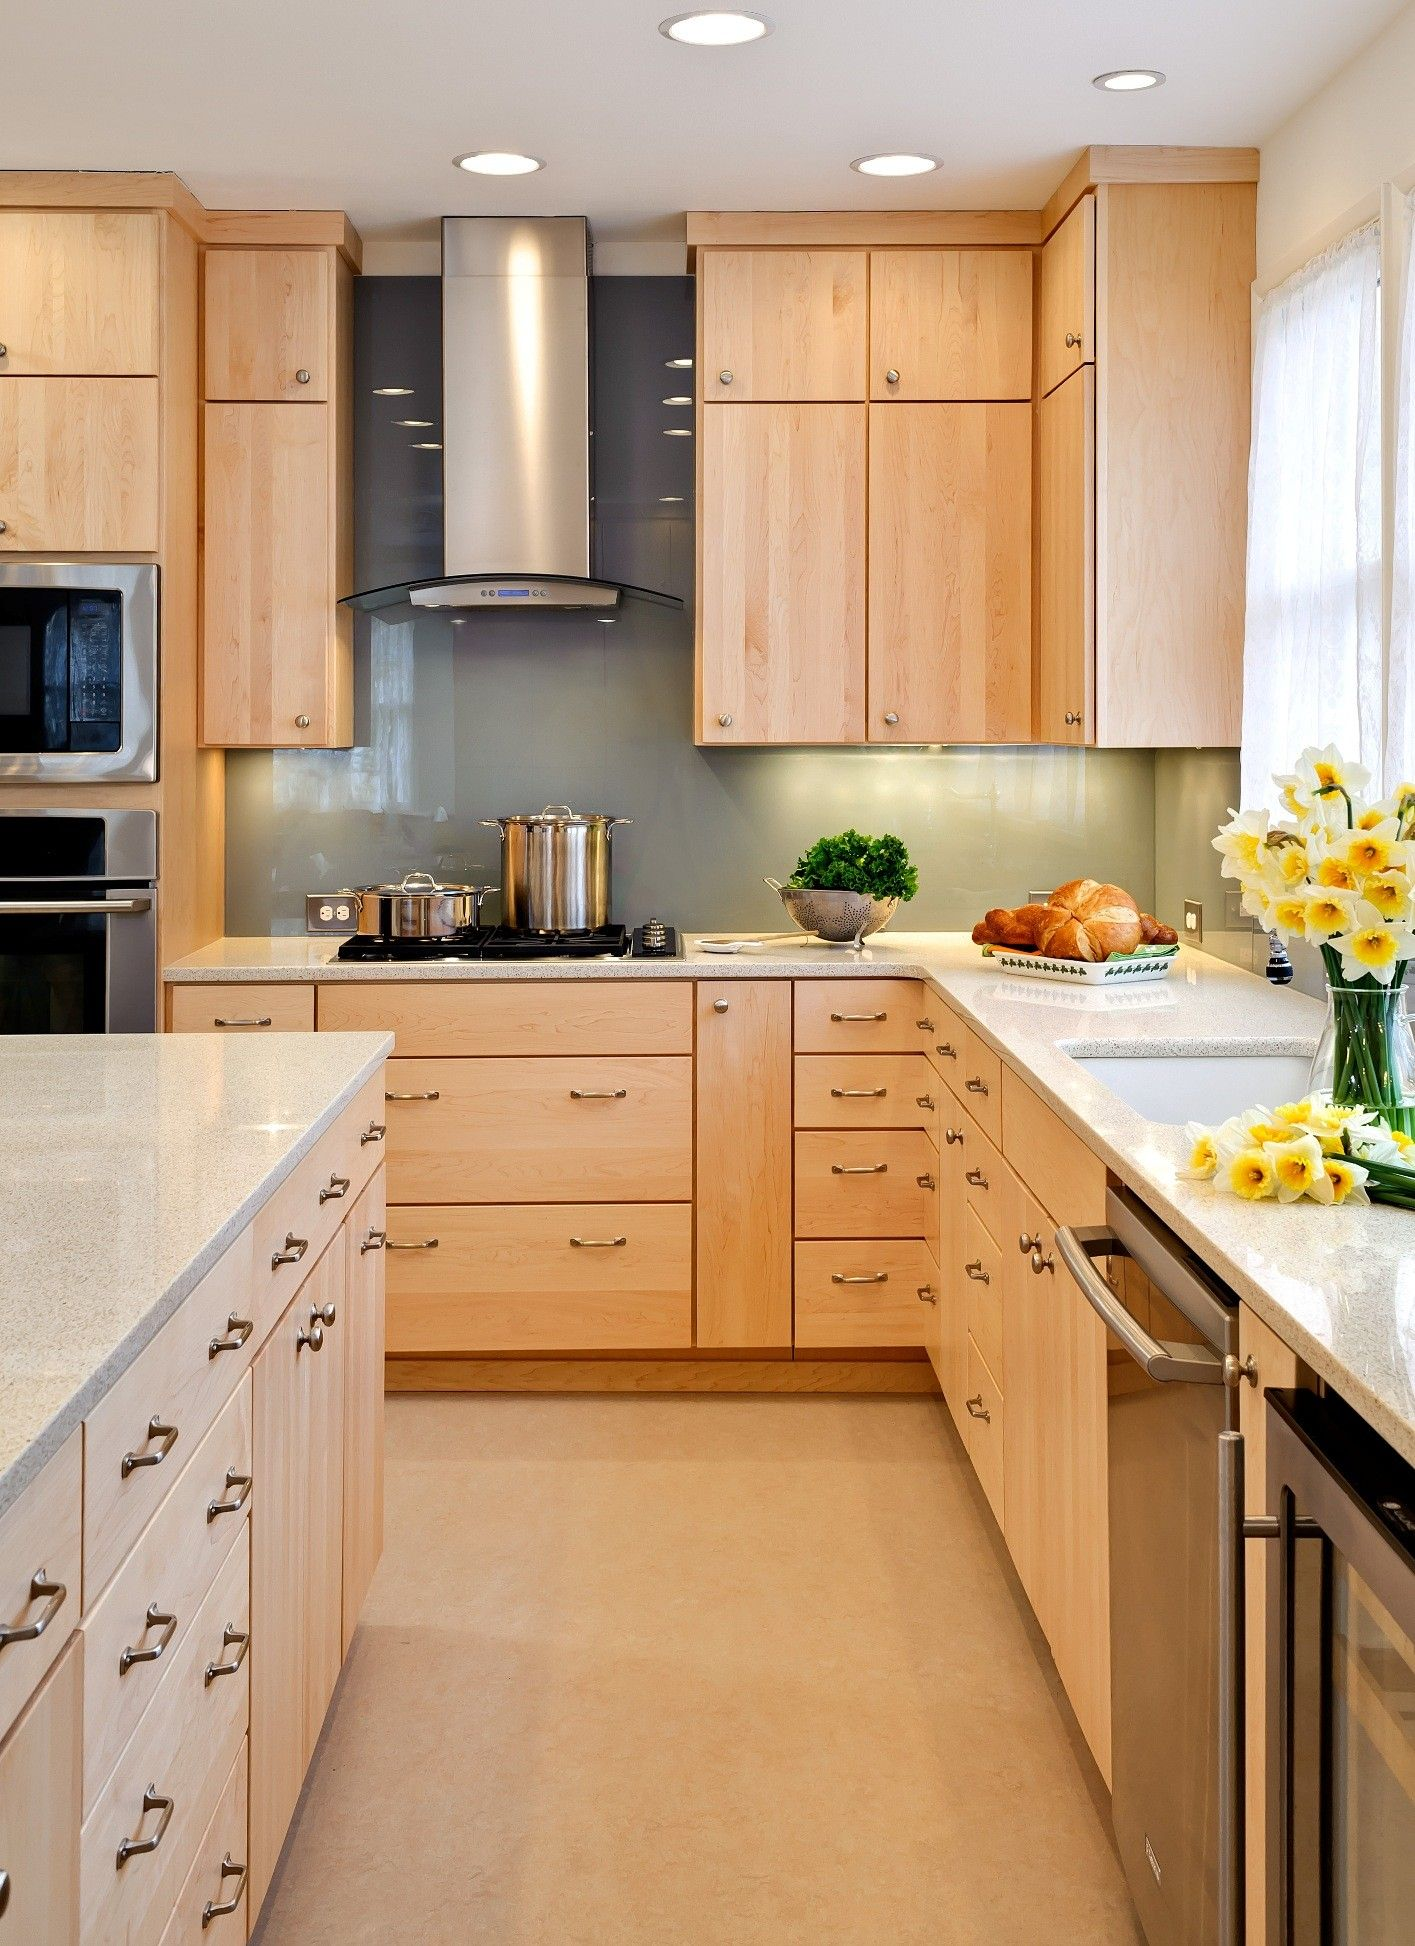 29 Best Collection Light Maple Kitchen Cabinets Cabinets Kitchen Lightmaple Birch Kitchen Cabinets Maple Kitchen Cabinets Kitchen Cabinets And Countertops